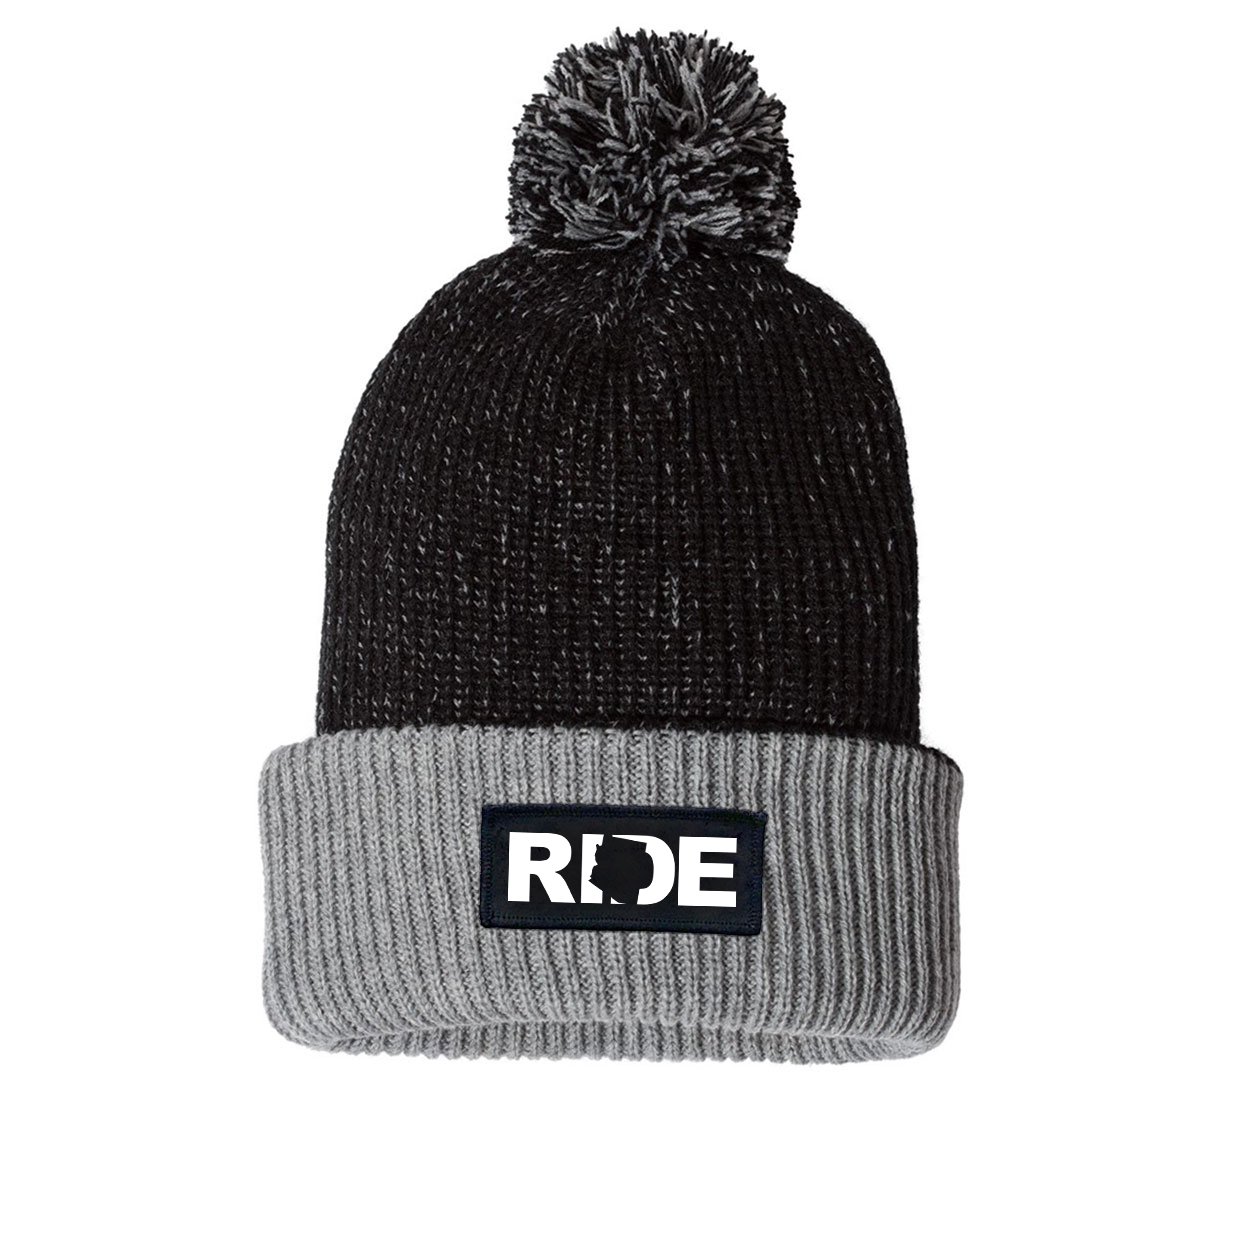 Ride Arizona Night Out Woven Patch Roll Up Pom Knit Beanie Black/Gray (White Logo)